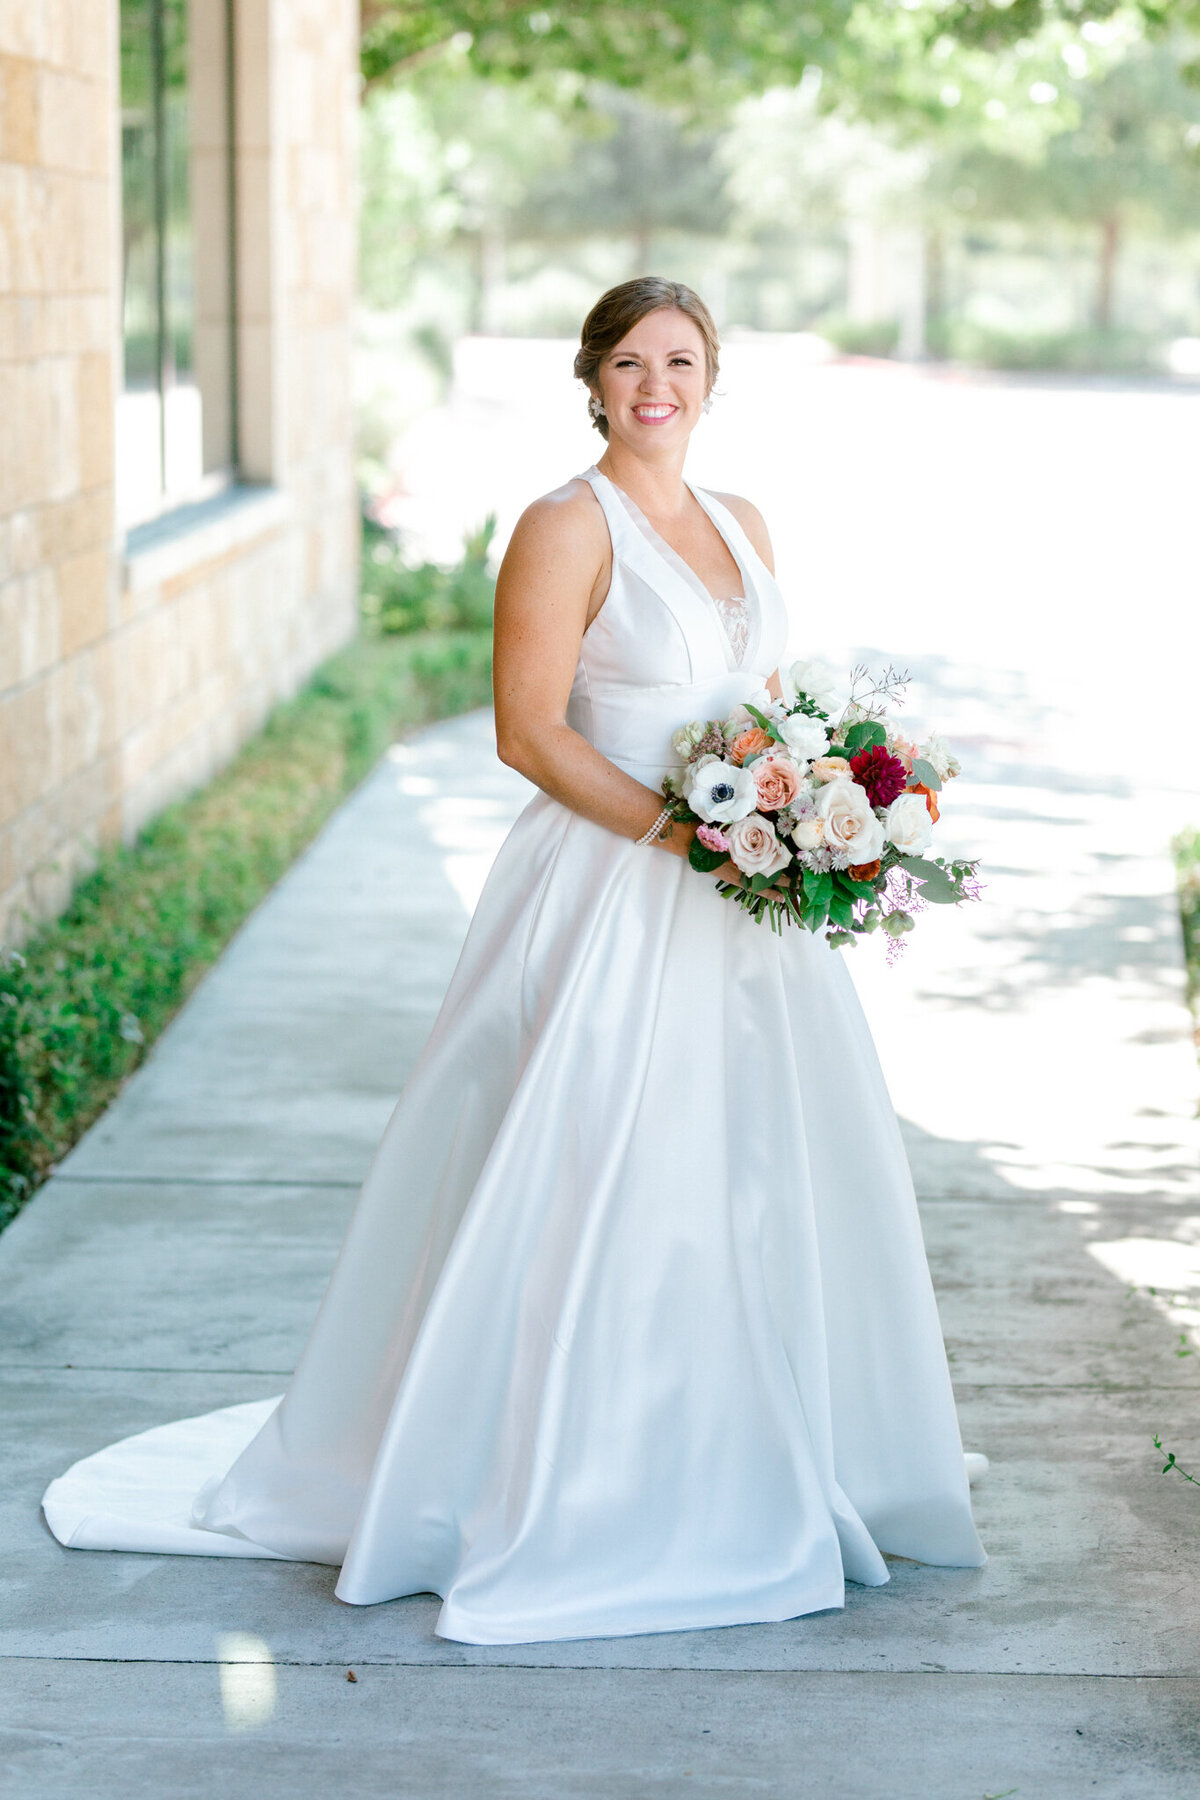 Kaylee & Michael's Wedding at Watermark Community Church | Dallas Wedding Photographer | Sami Kathryn Photography-49